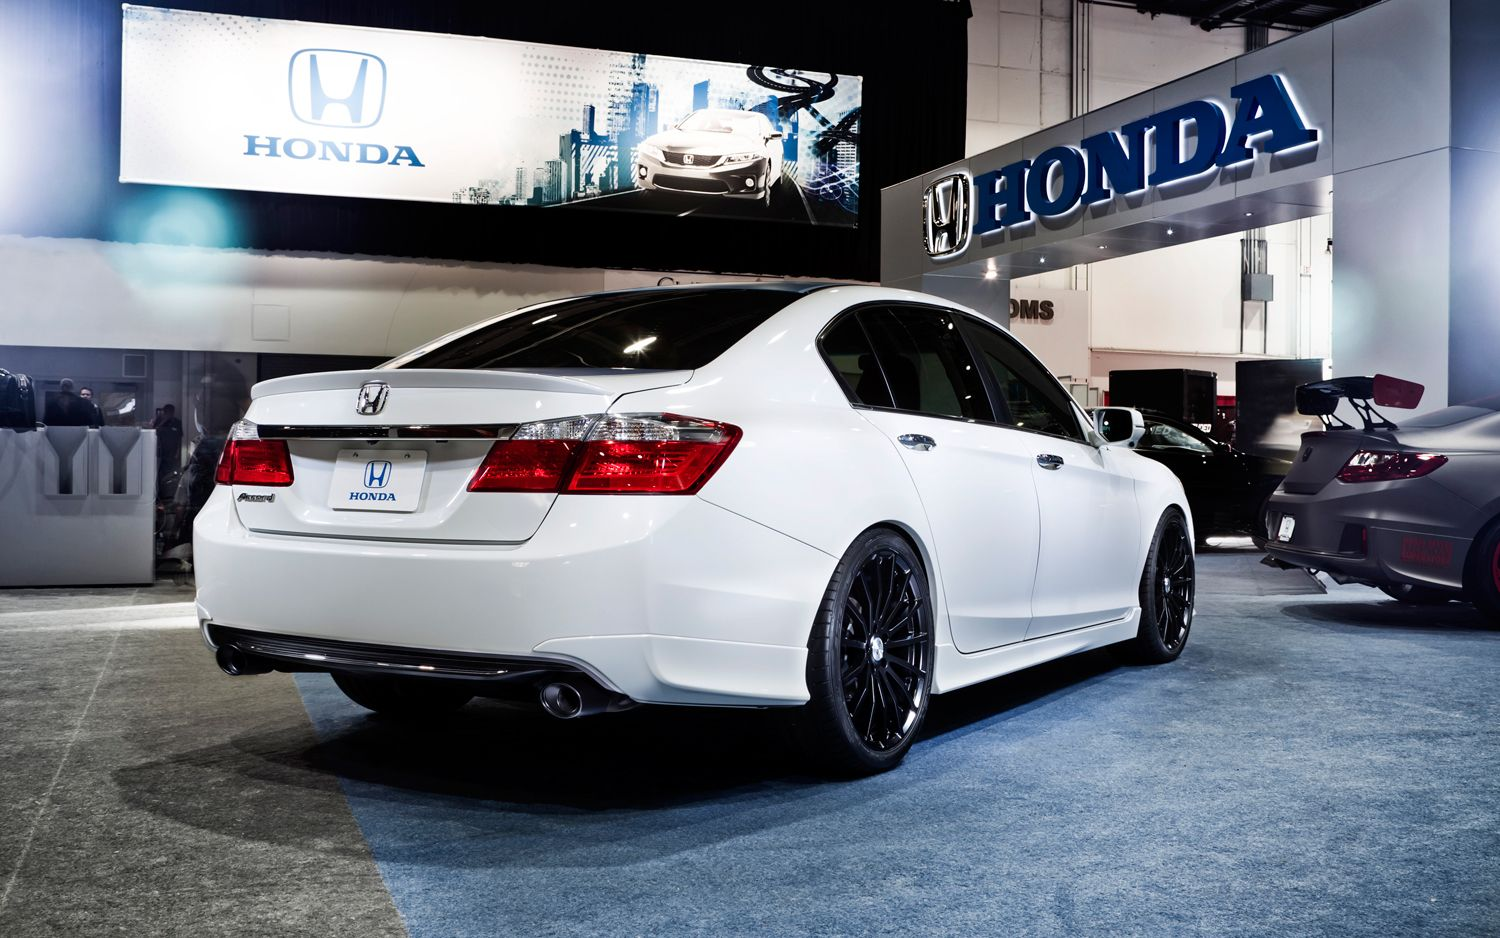 2013 honda accord ex sedan by dso eyewear and mad industries right rh pinterest com